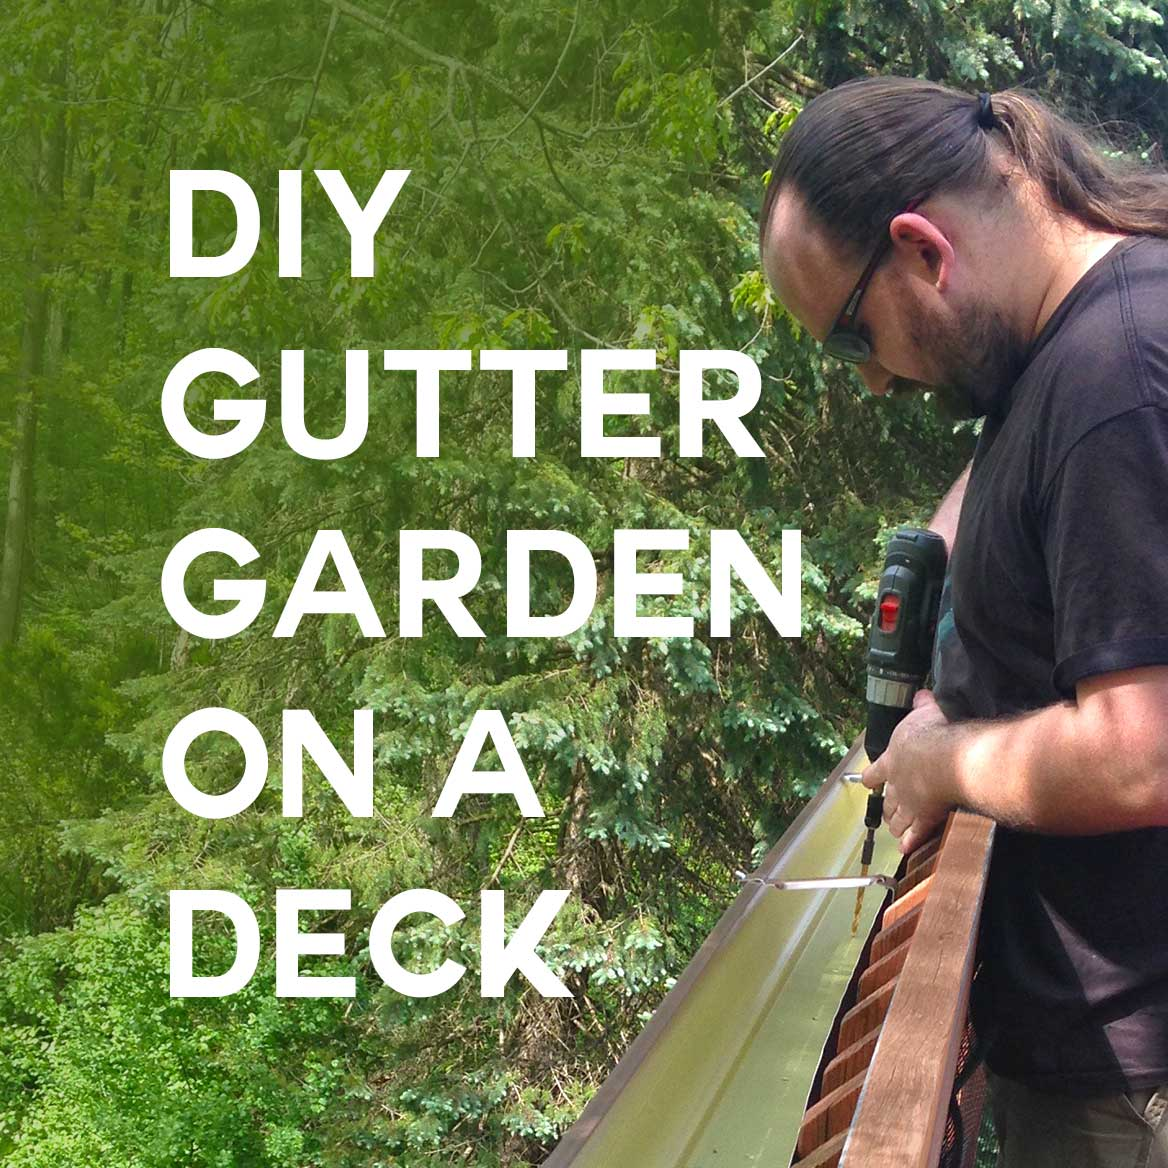 Put a Gutter Garden on a Deck Rail